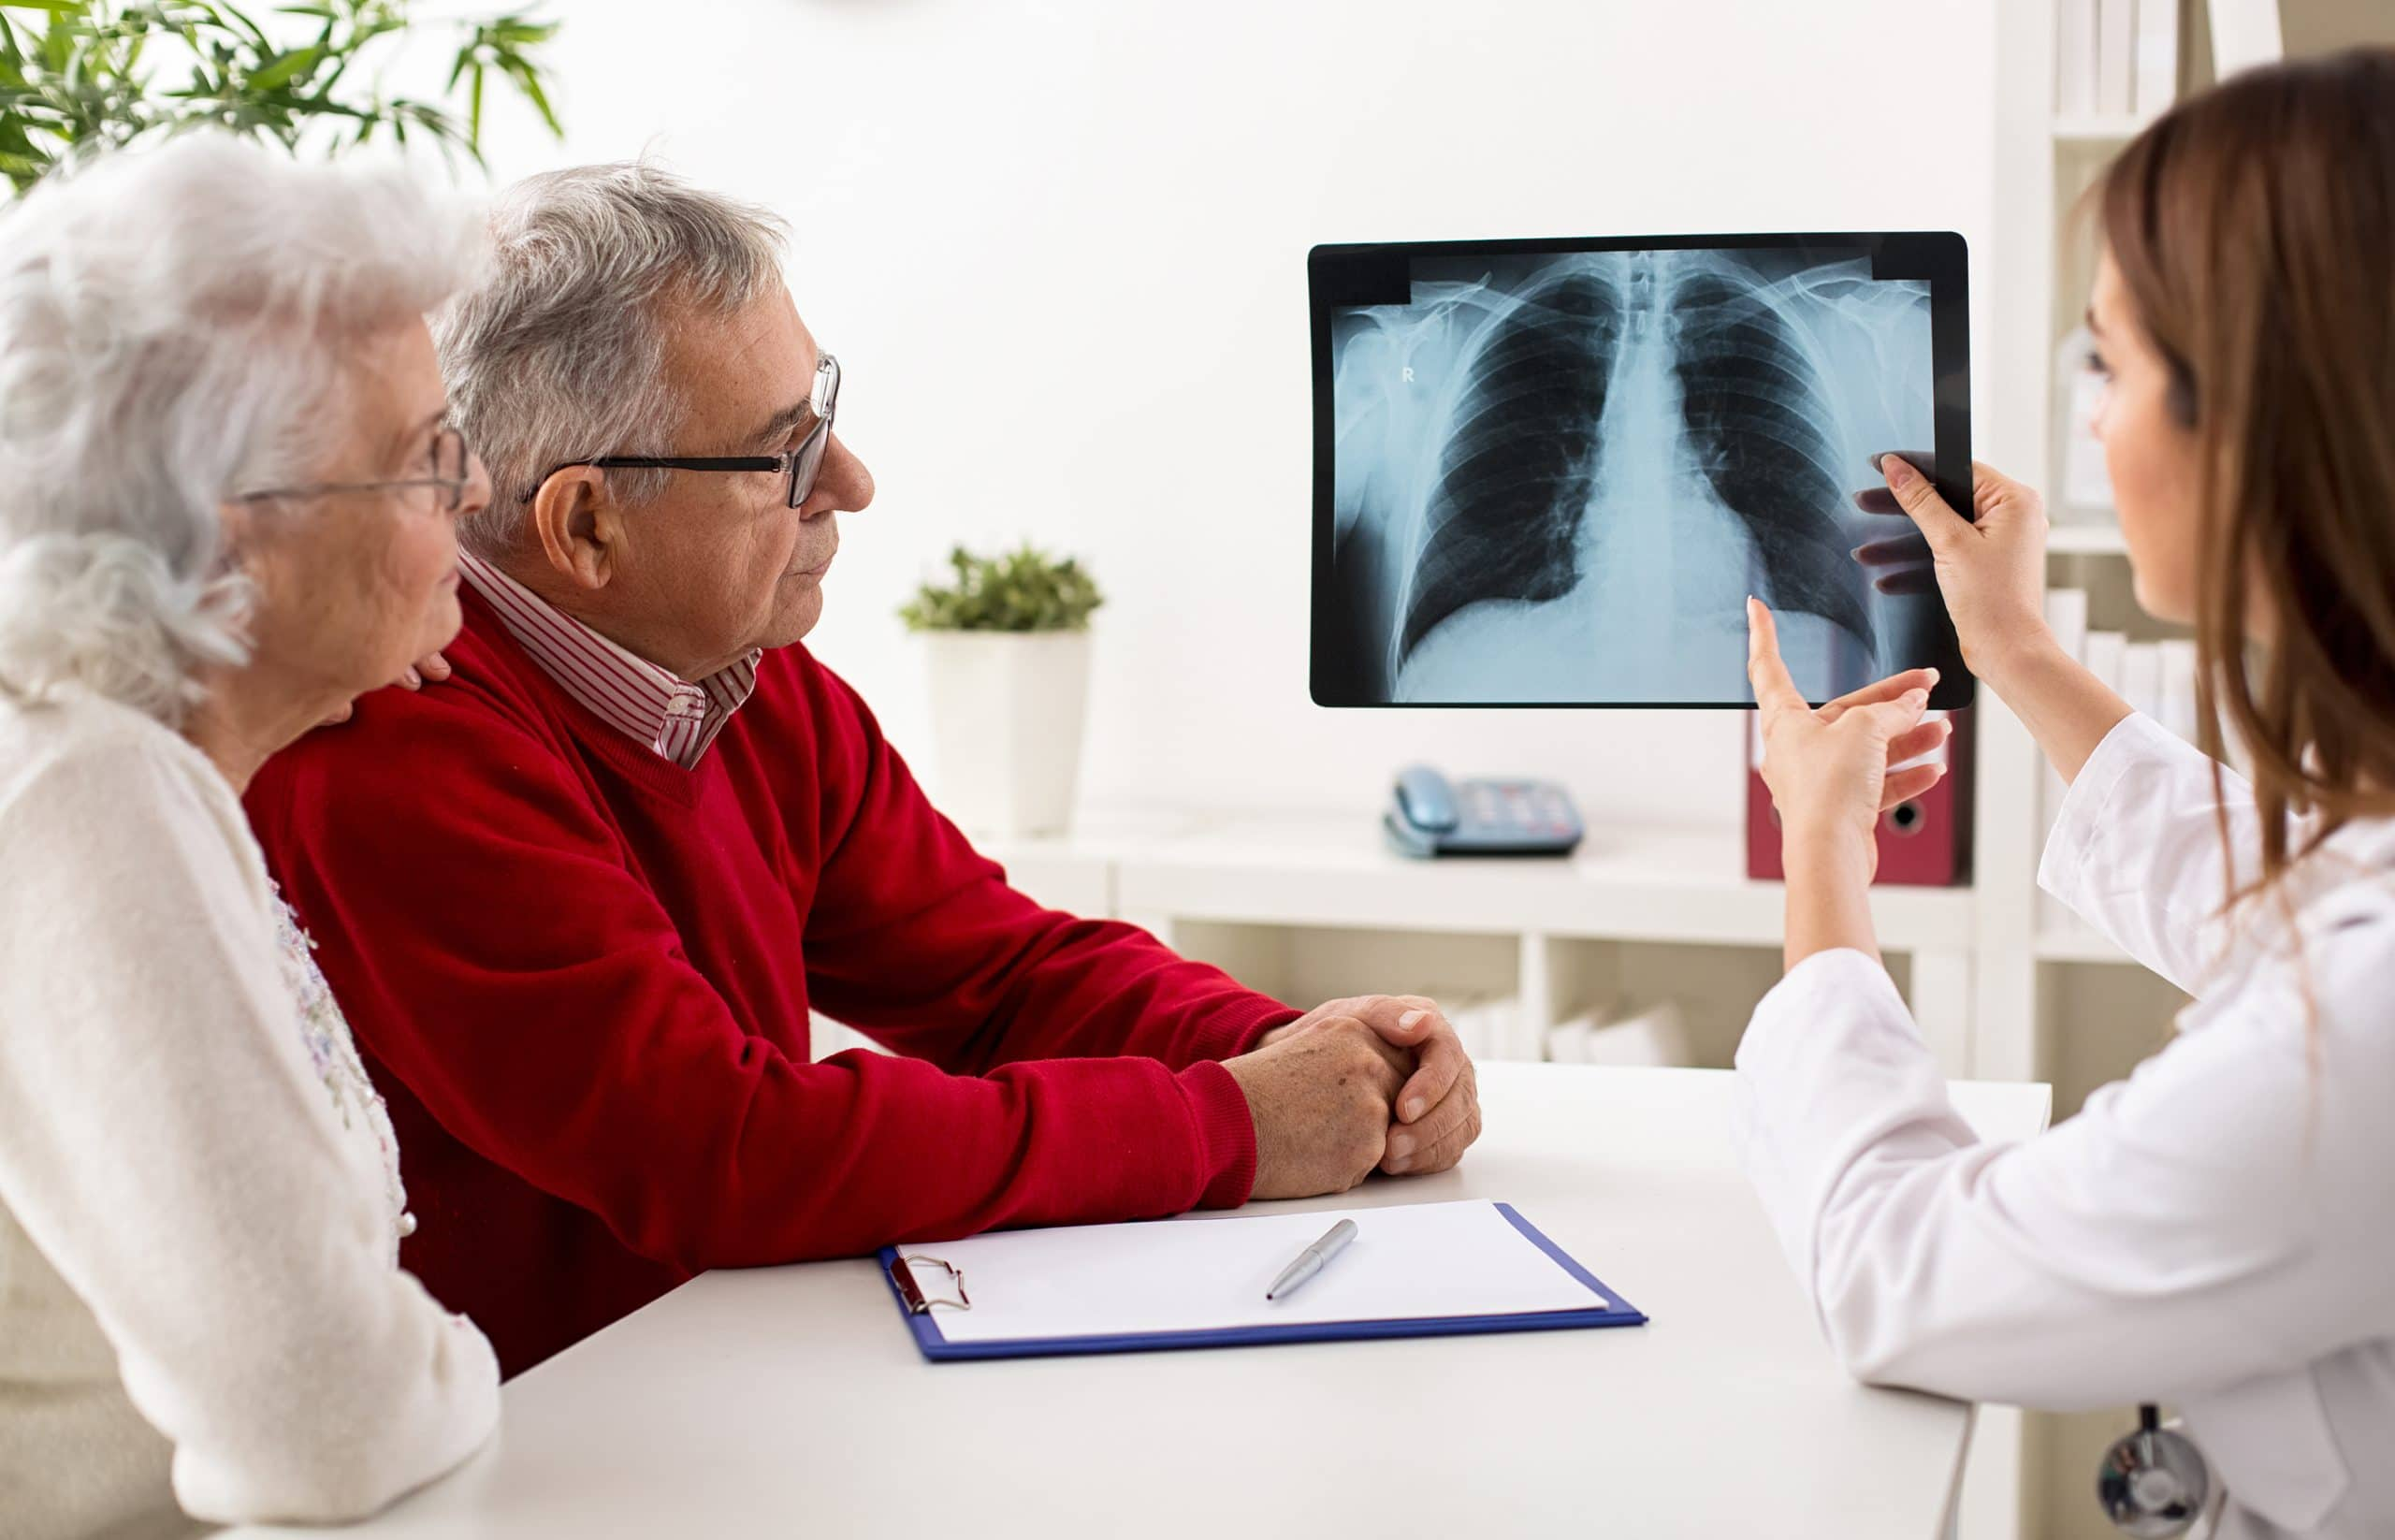 This is an image of a doctor showing a patient their pleural mesothelioma x-ray results.